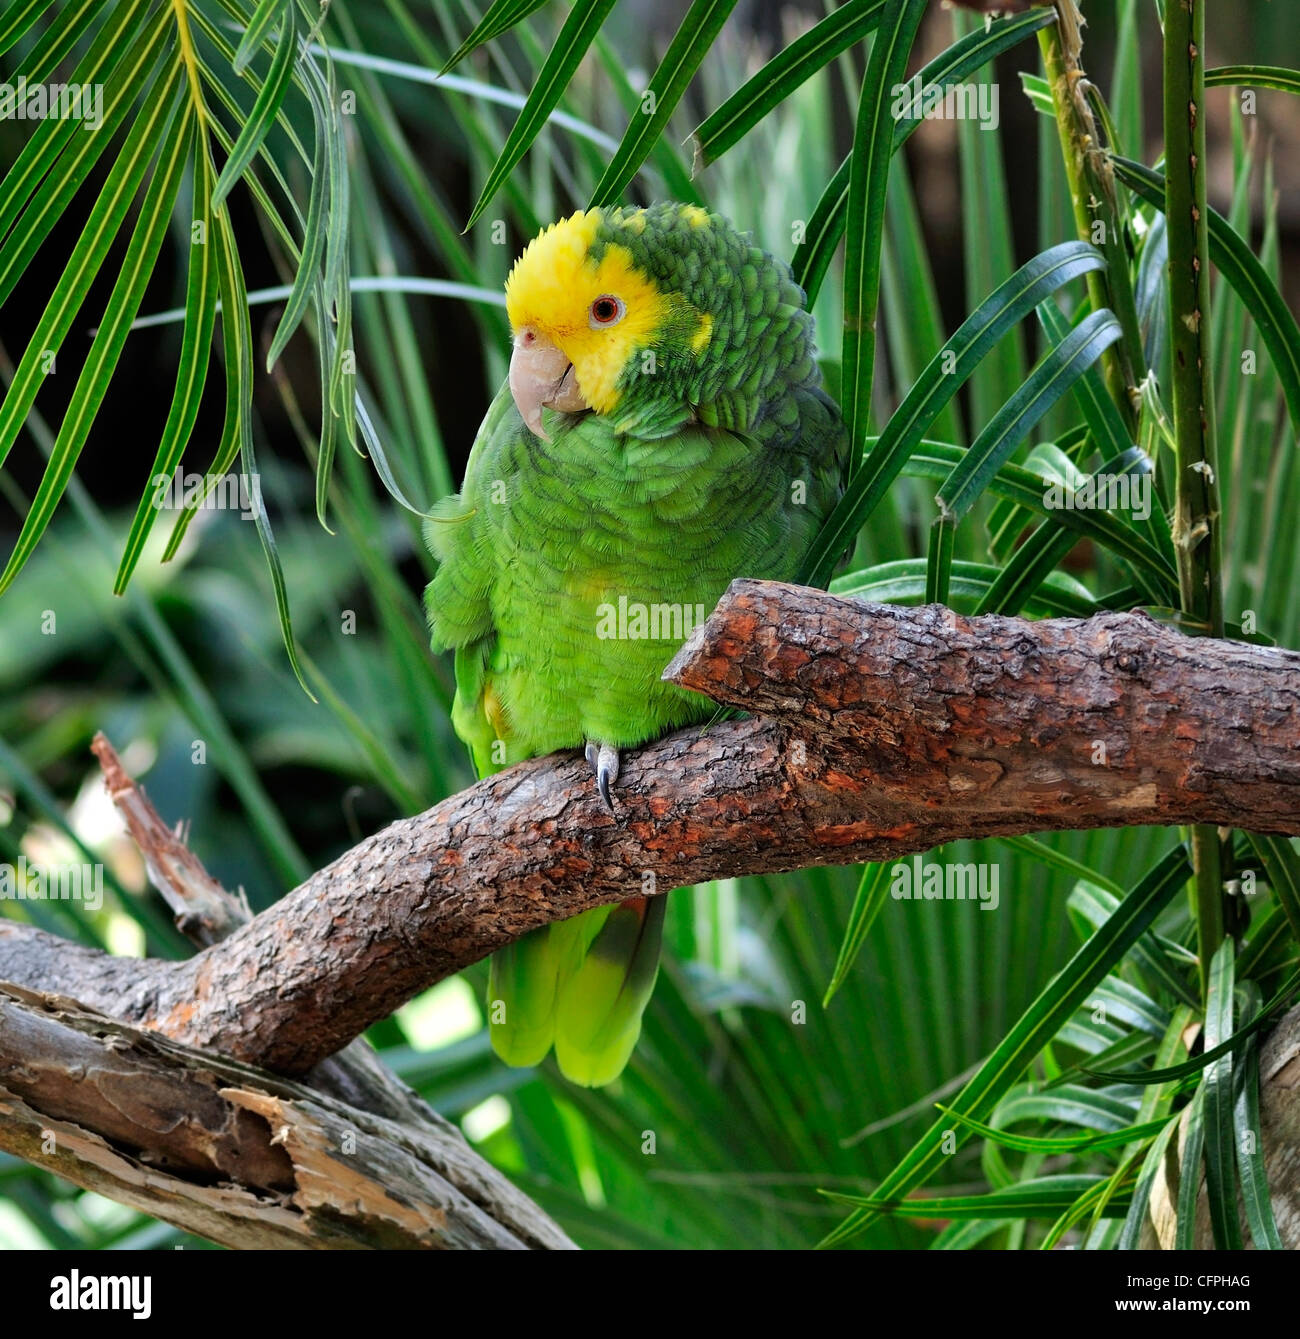 Colorful Green And Yellow Parrot Sitting On a Branch - Stock Image